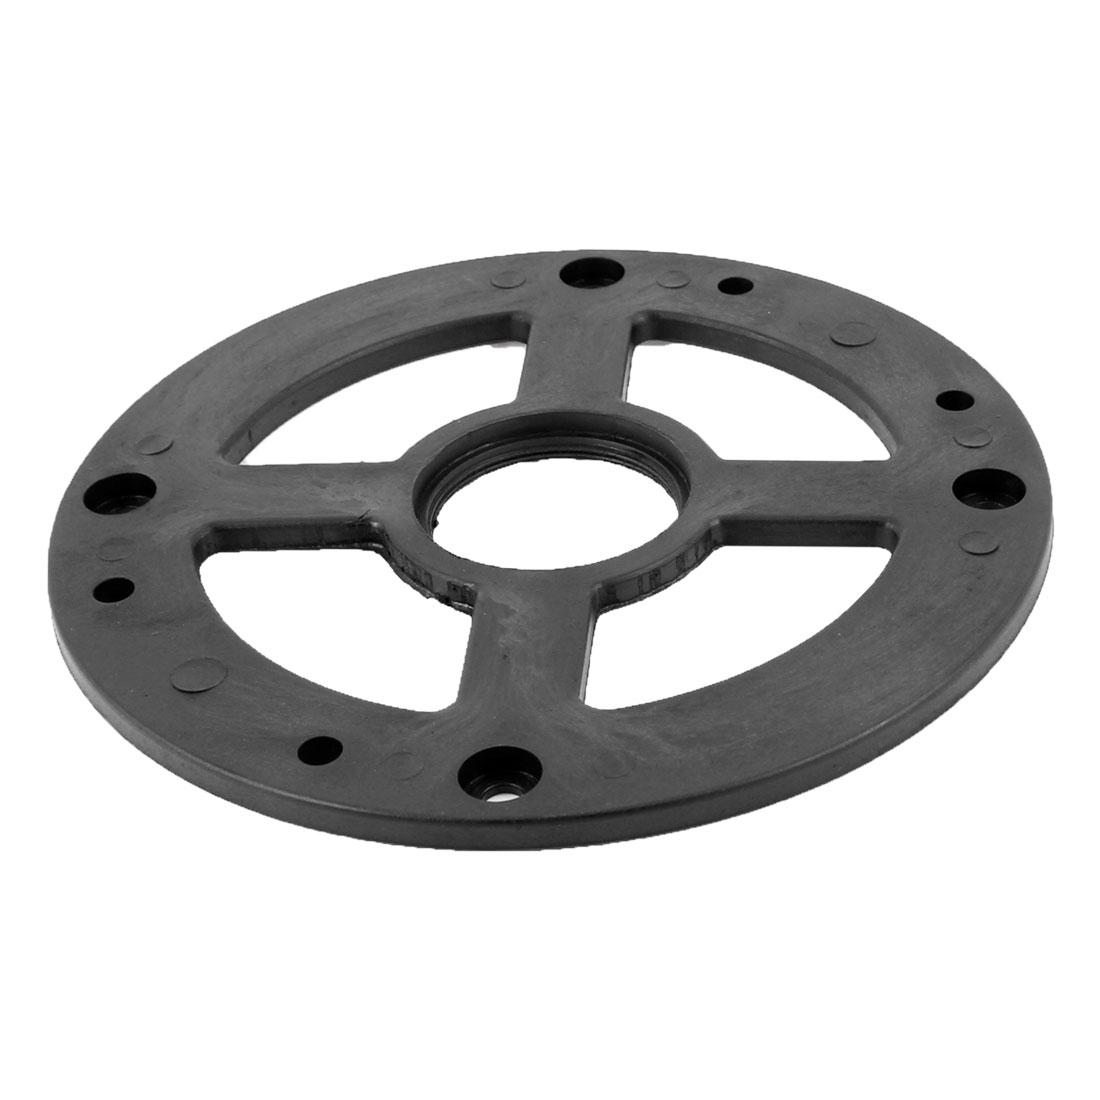 Round Black Plastic Replacement Base for Makita 3600 Plunge Router